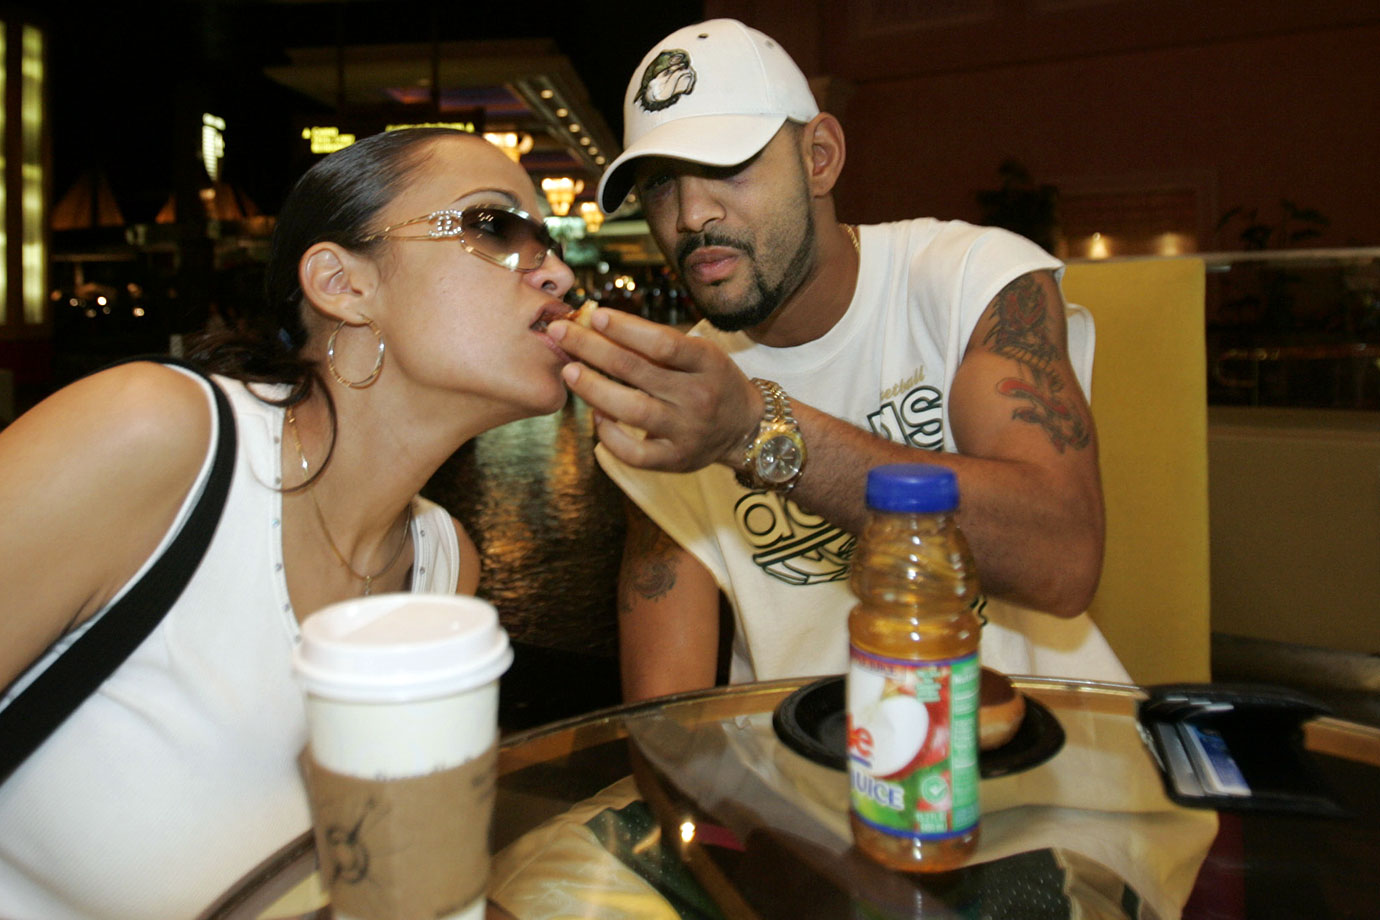 Undisputed lightweight champion Diego Corrales shares a doughnut with his wife Michelle at the Mandalay Bay Resort Hotel & Casino on May 10, 2005 in Las Vegas. Corrales, who got up from two knockdowns in the 10th round to beat Jose Luis Castillo three days earlier, was happy to be able to eat doughnuts again after weeks of strict fight training diet.